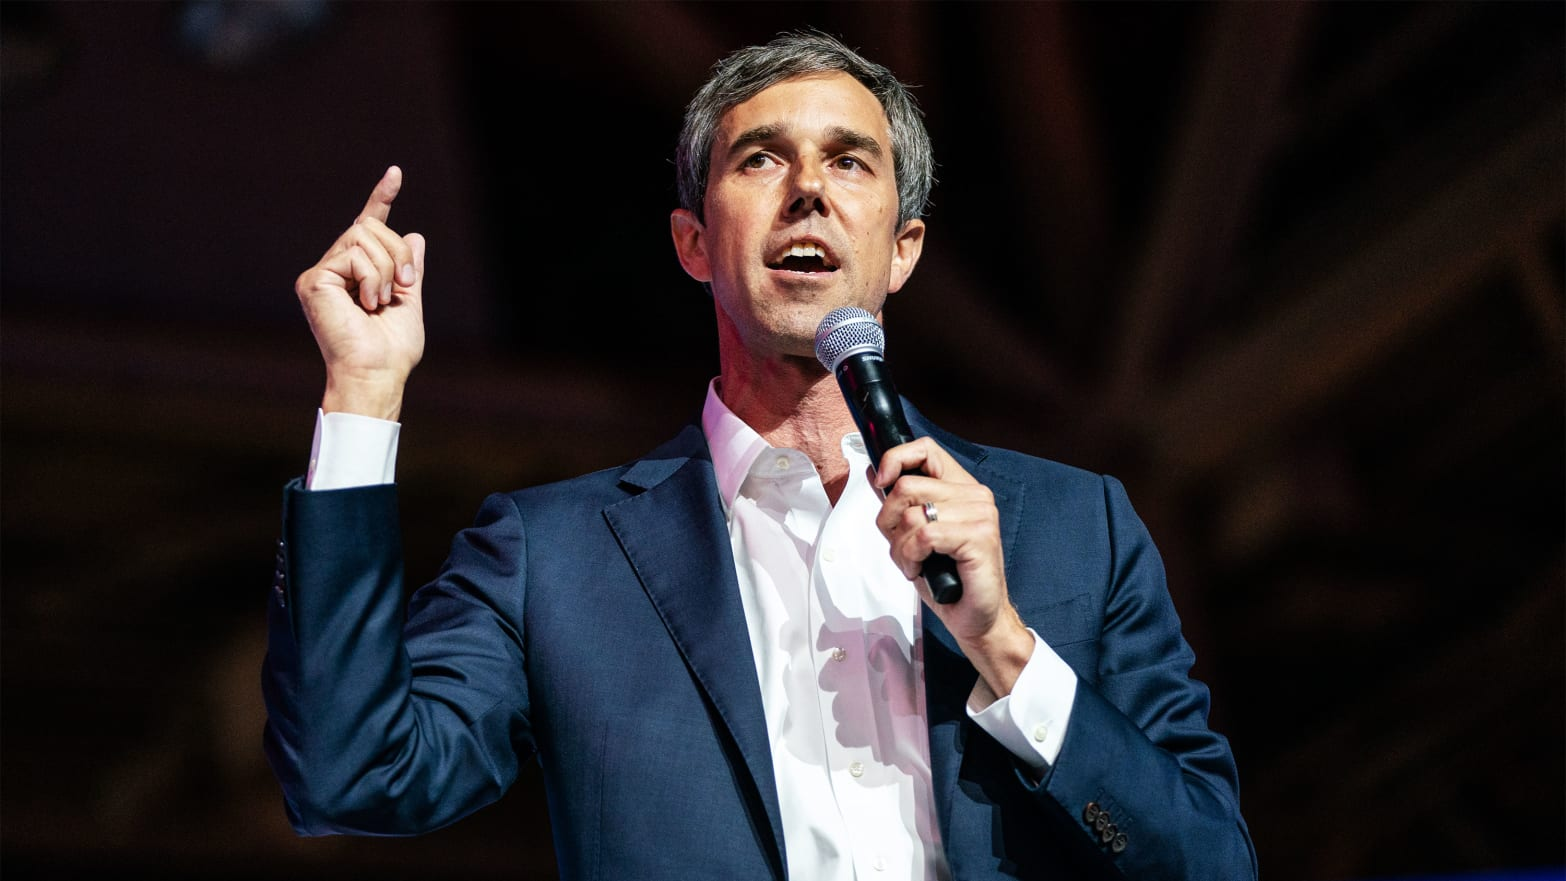 Beto O'Rourke Is Going Bust: The Once Great Dem Hope Is Among the Many 2020ers Struggling for Cash